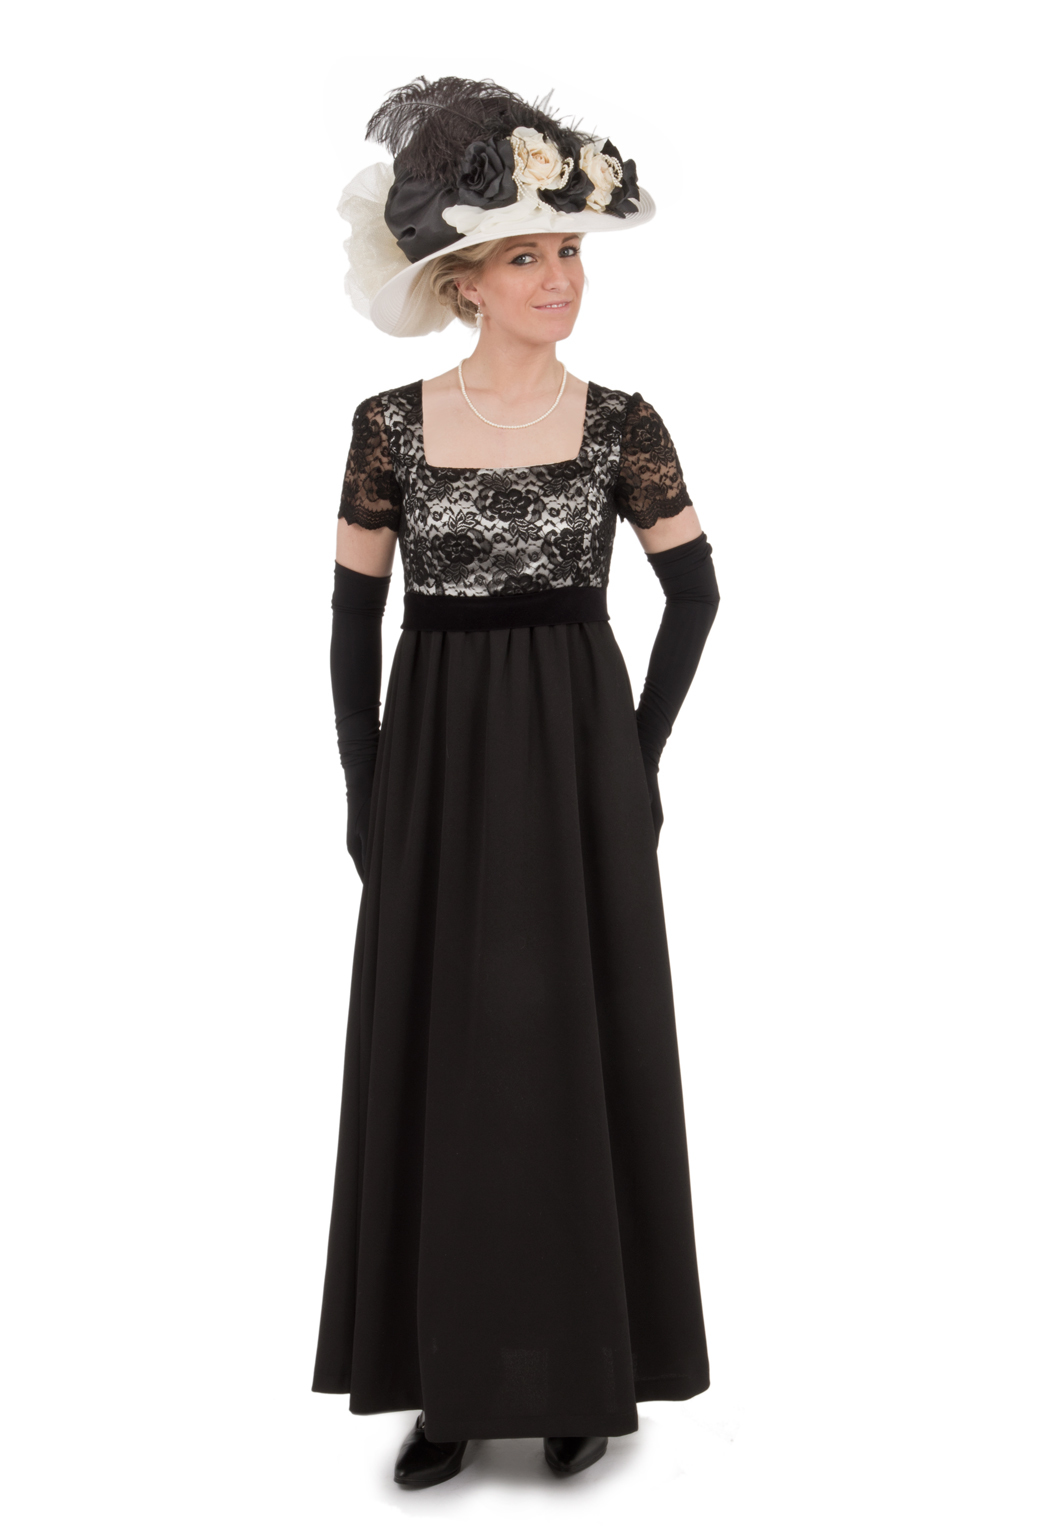 Match the characters: Edwardian Fashions for your Downton ...